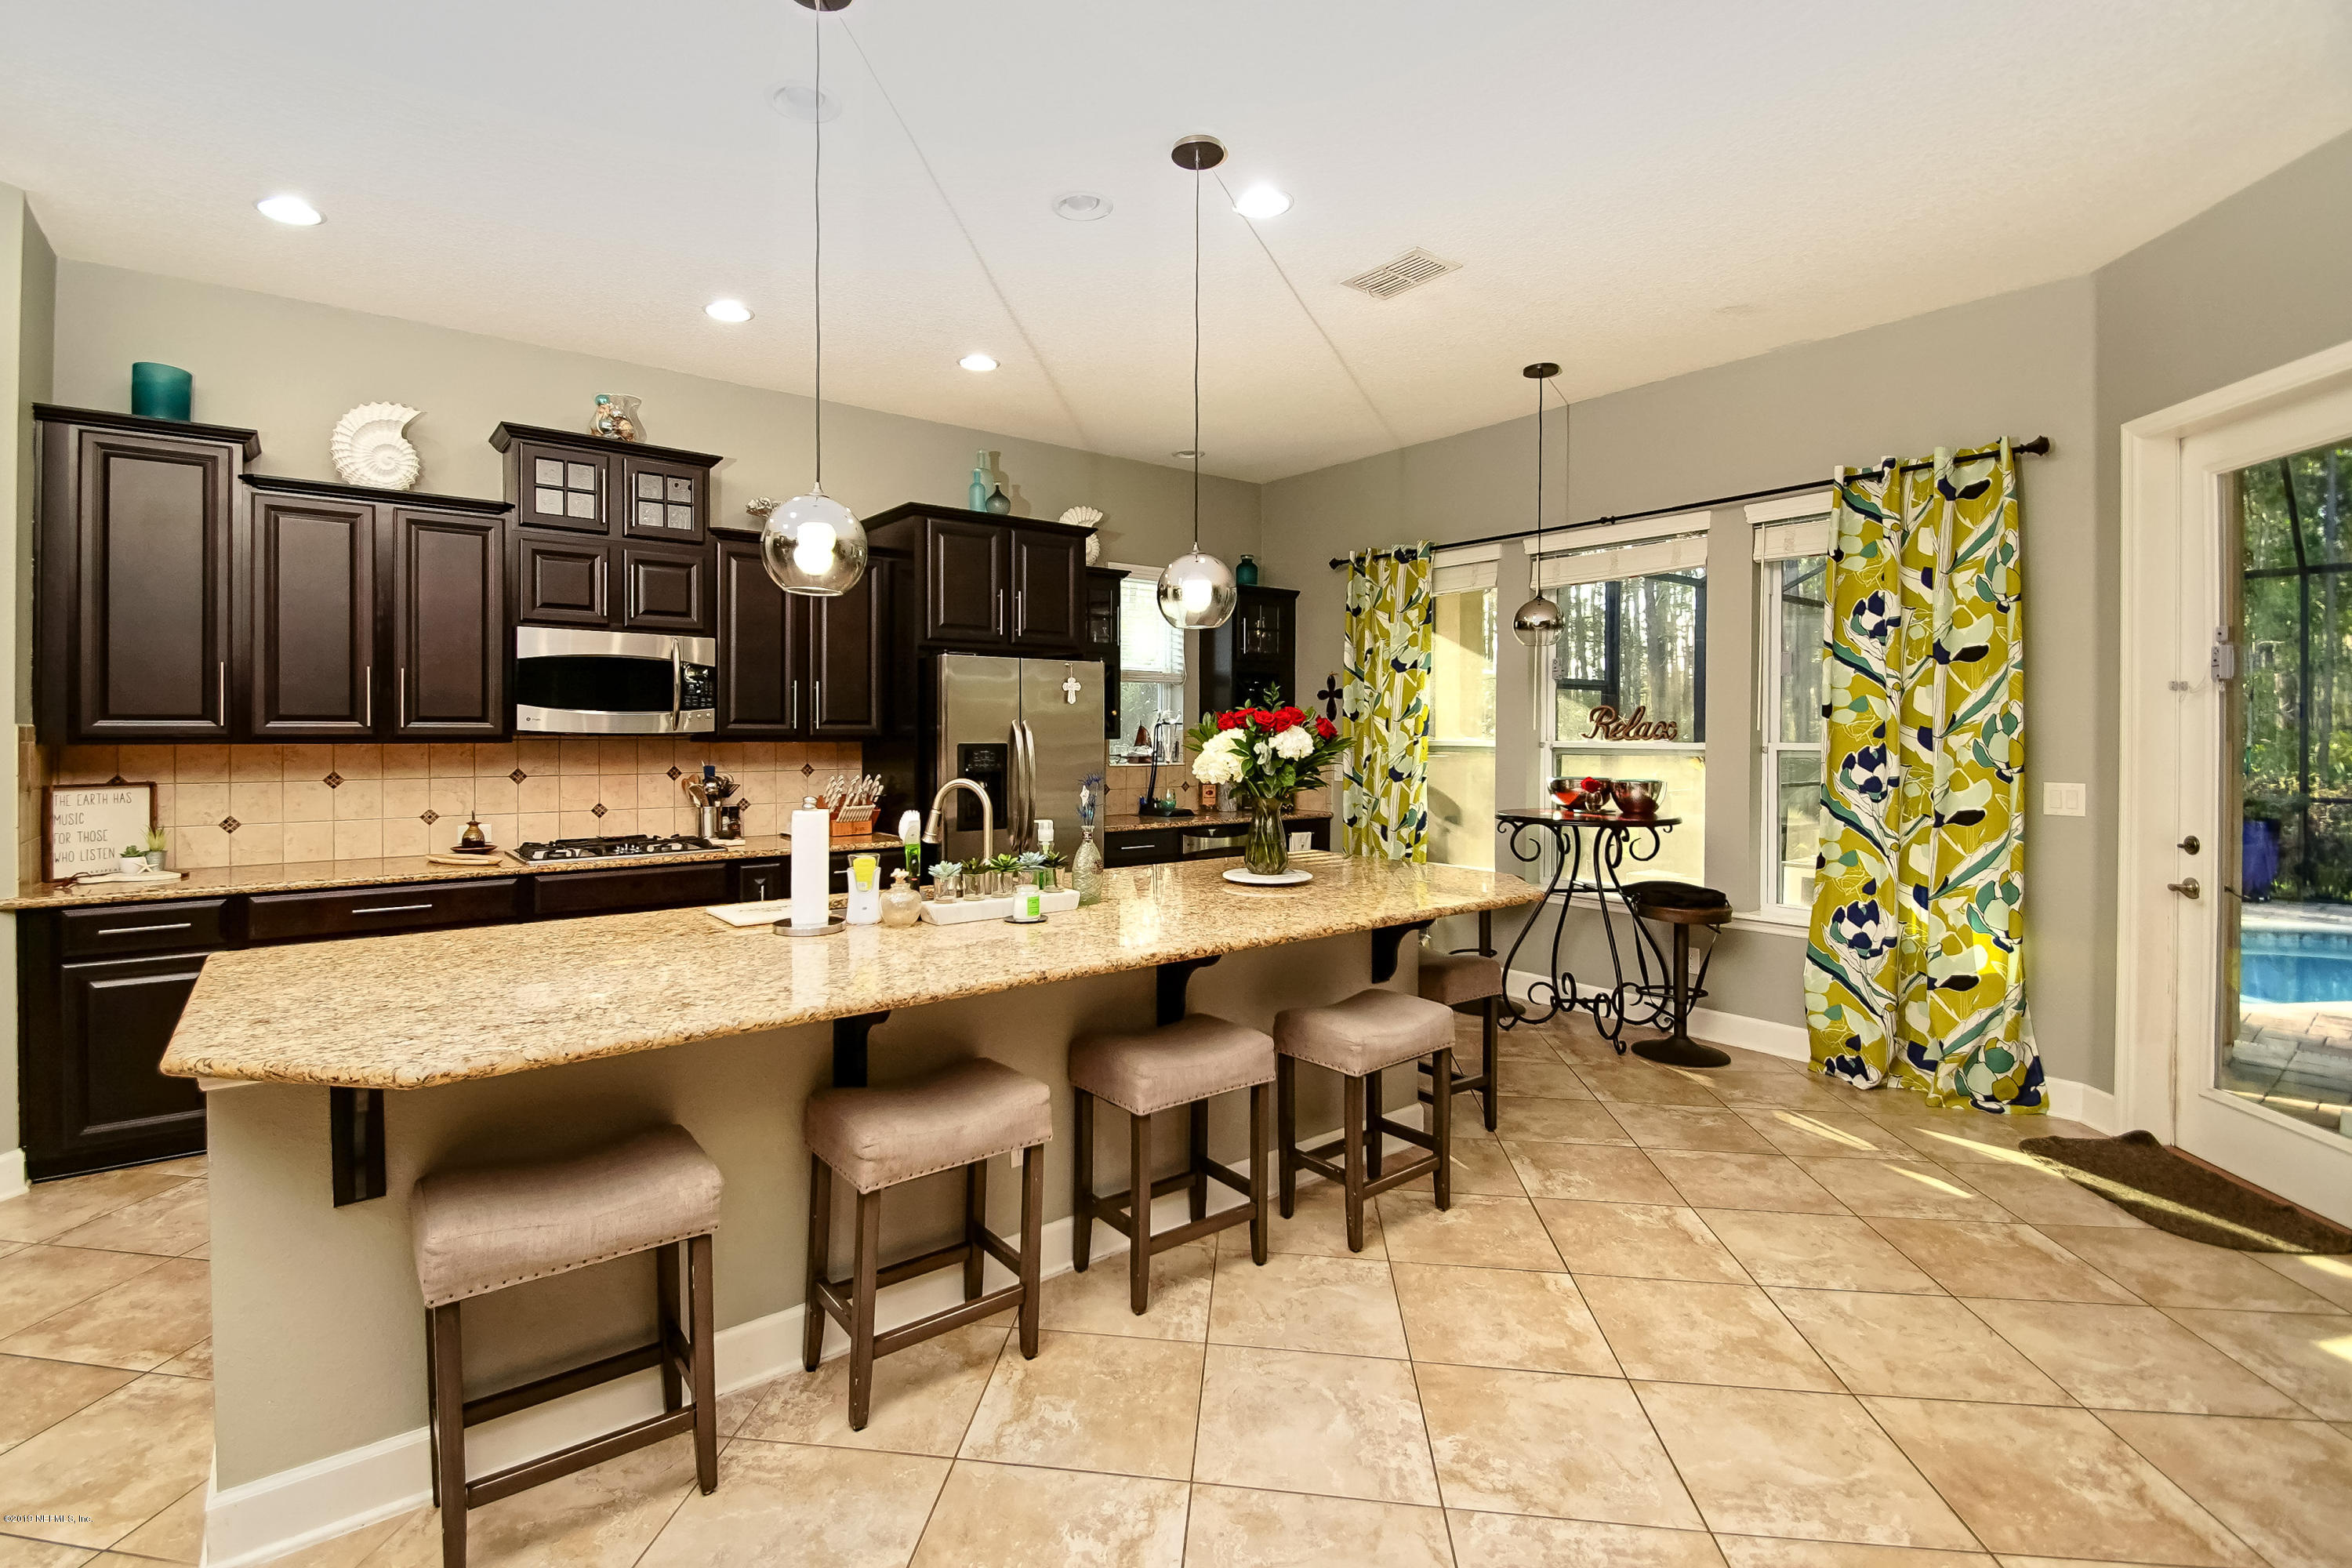 690 MAJESTIC EAGLE, PONTE VEDRA BEACH, FLORIDA 32081, 4 Bedrooms Bedrooms, ,3 BathroomsBathrooms,Residential - single family,For sale,MAJESTIC EAGLE,981391